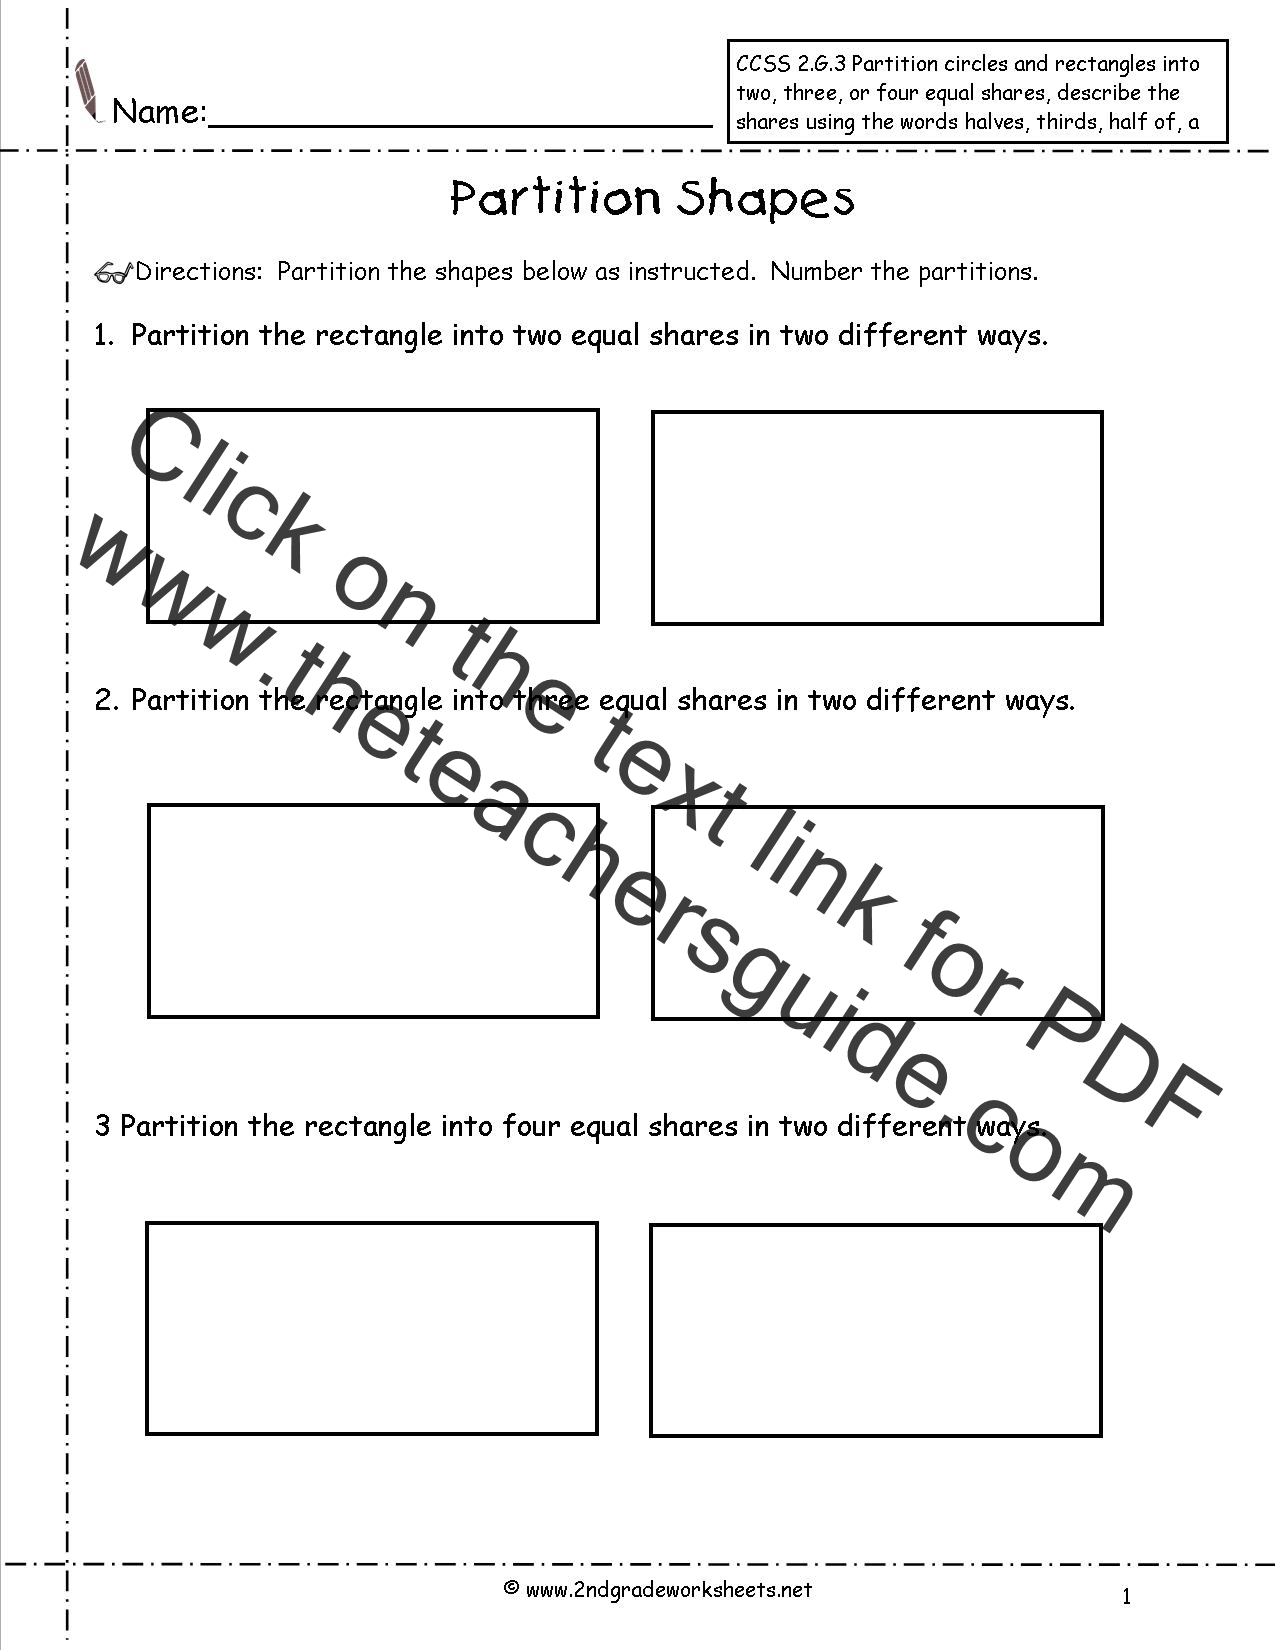 hight resolution of CCSS 2.G.3 Worksheets